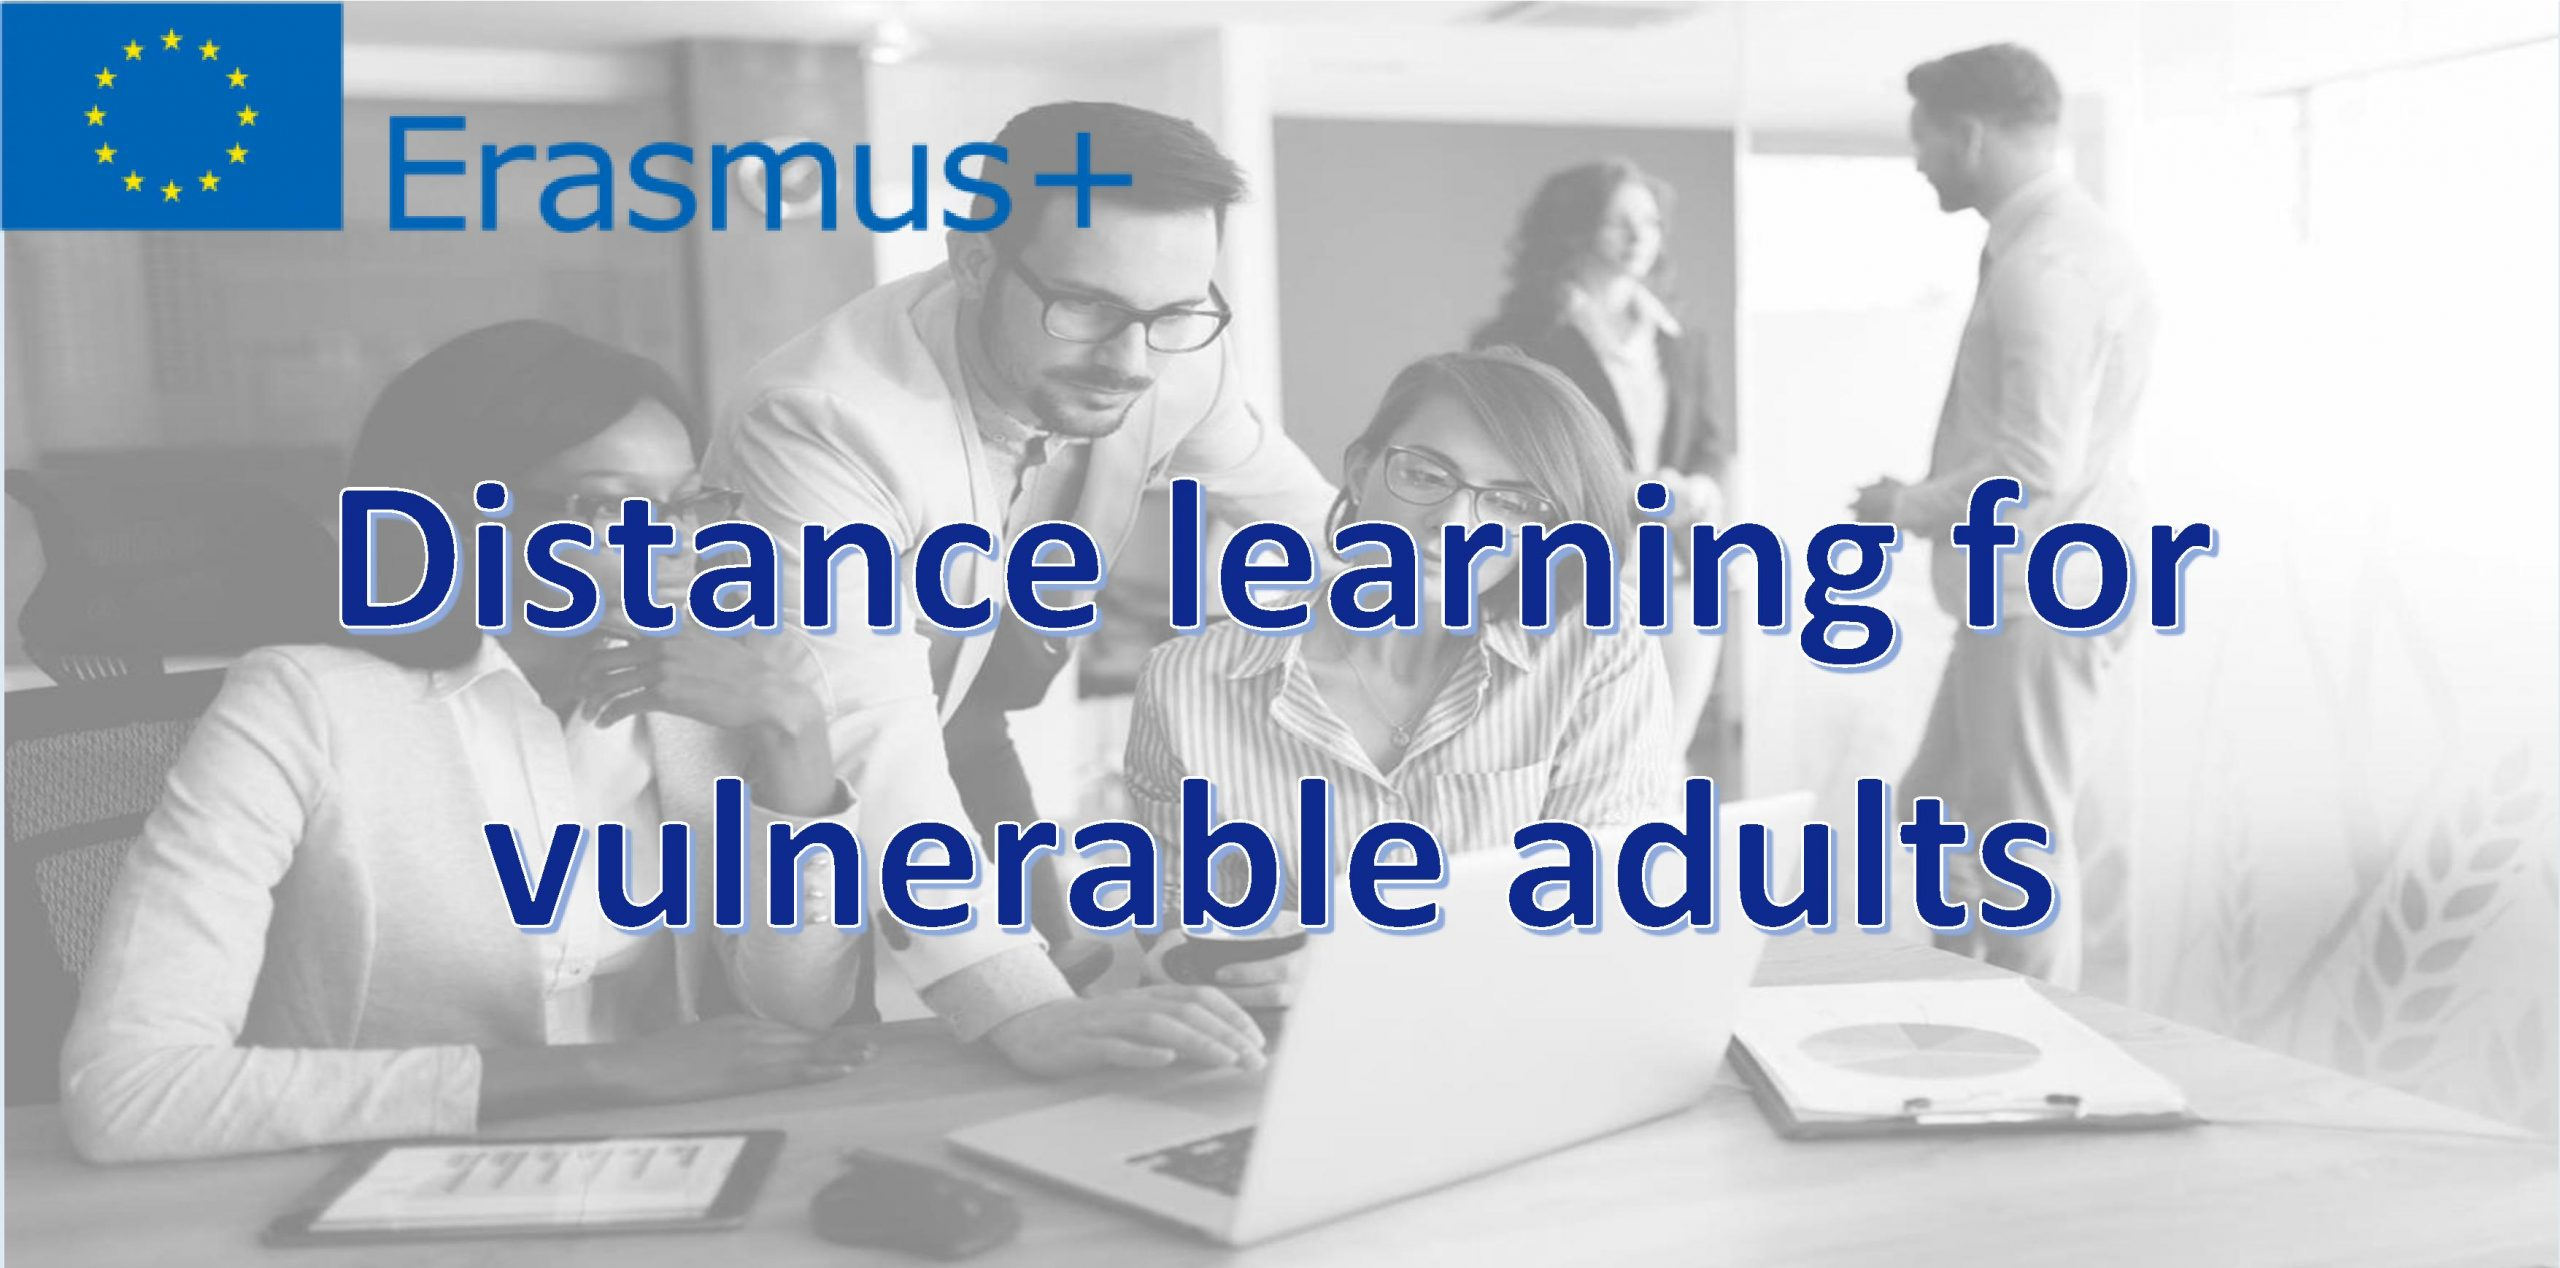 Distance learning for vulnerable adults - projekt